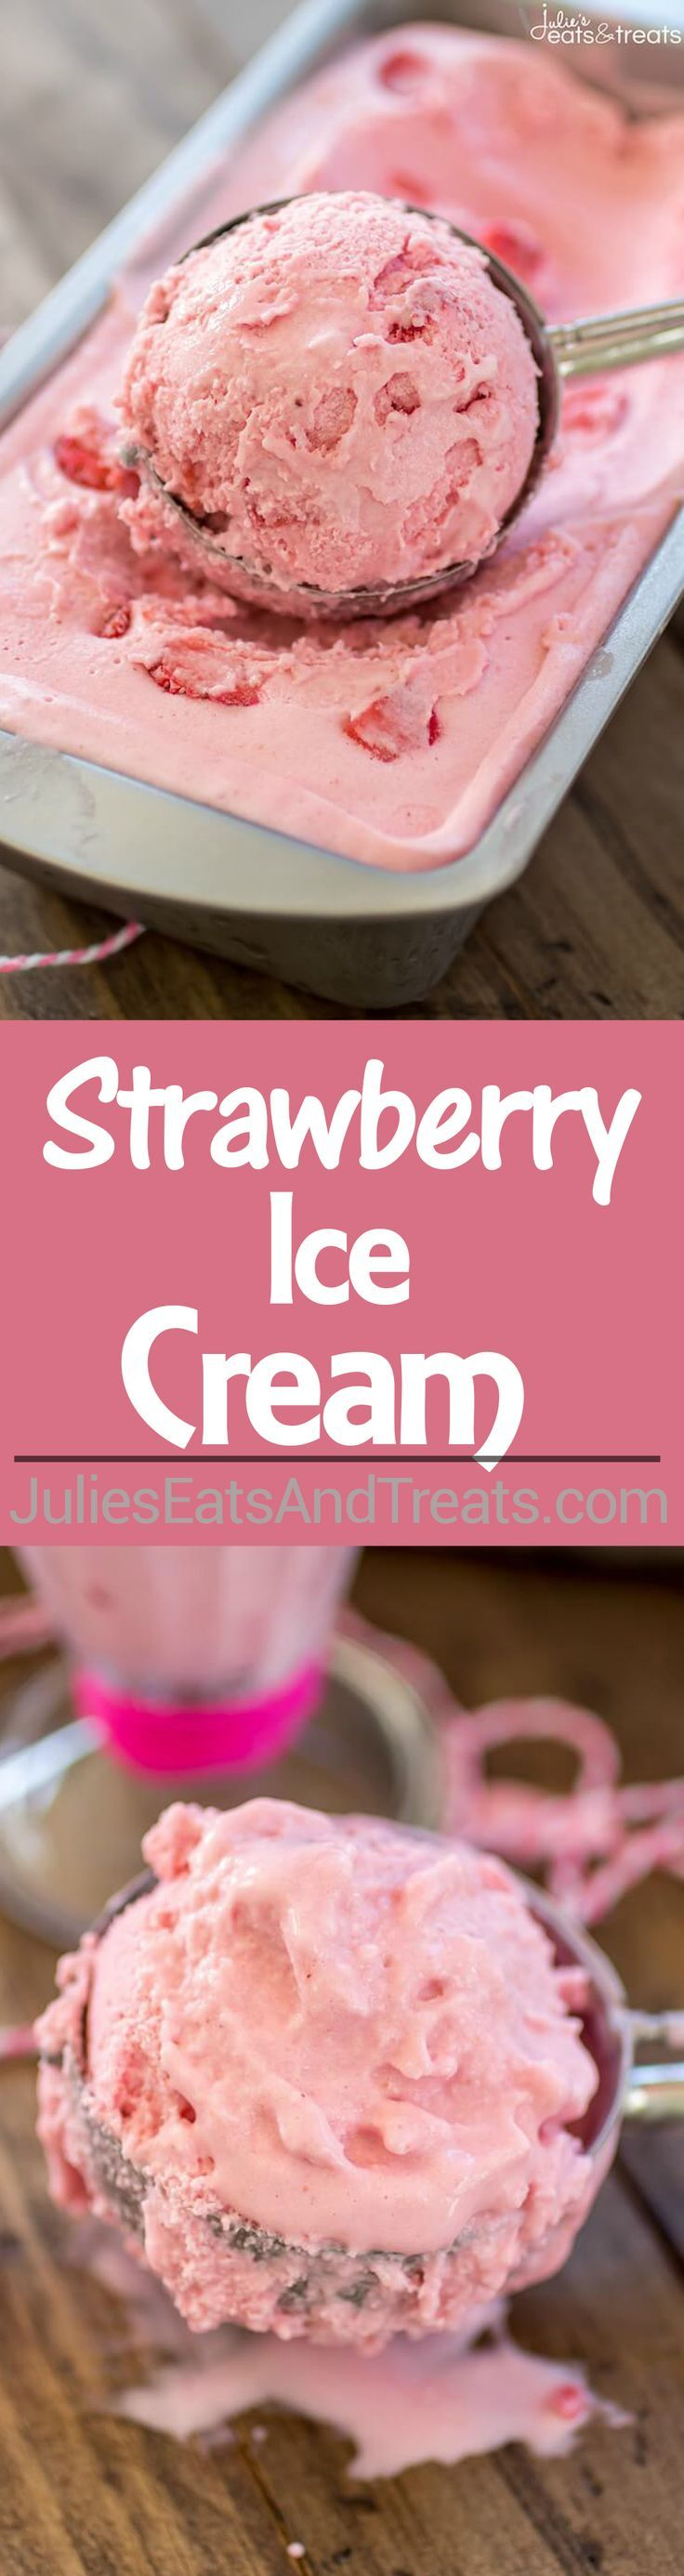 Strawberry Ice Cream Recipe – This homemade ice cream is super creamy and so fresh-tasting thanks to the use of fresh strawberries!